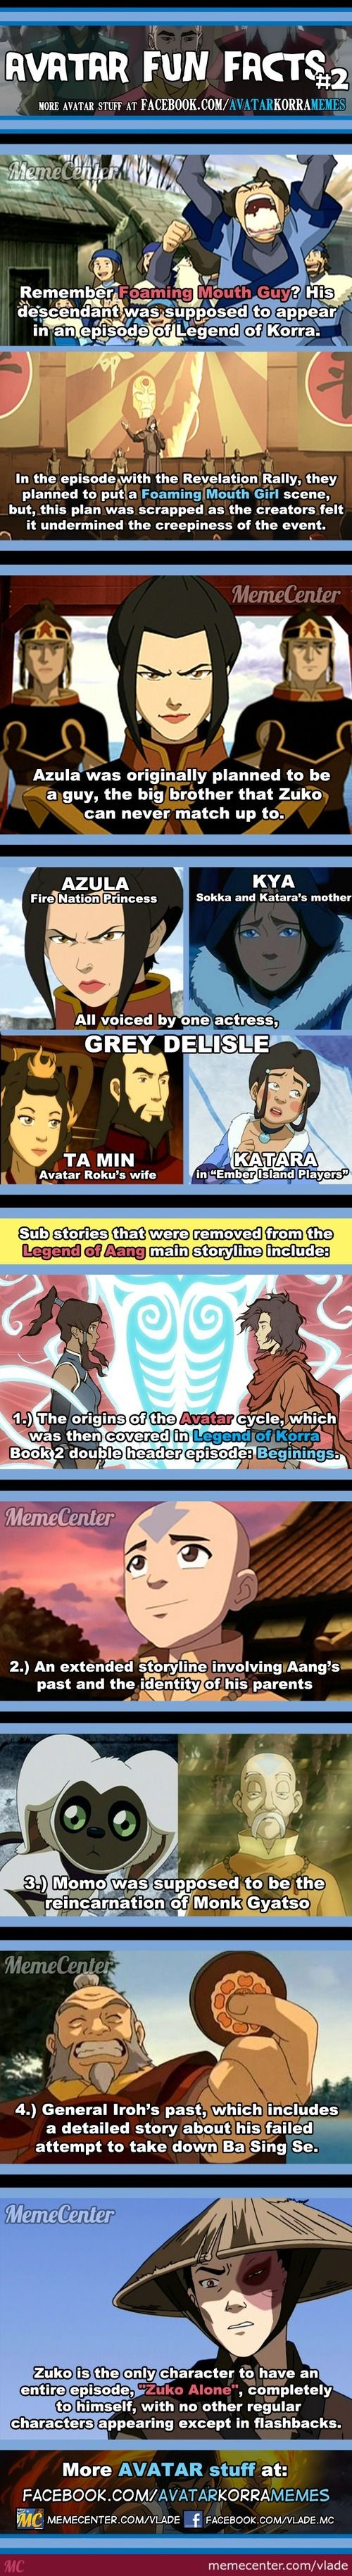 Avatar The Last Airbender and Legend of Korra fun facts